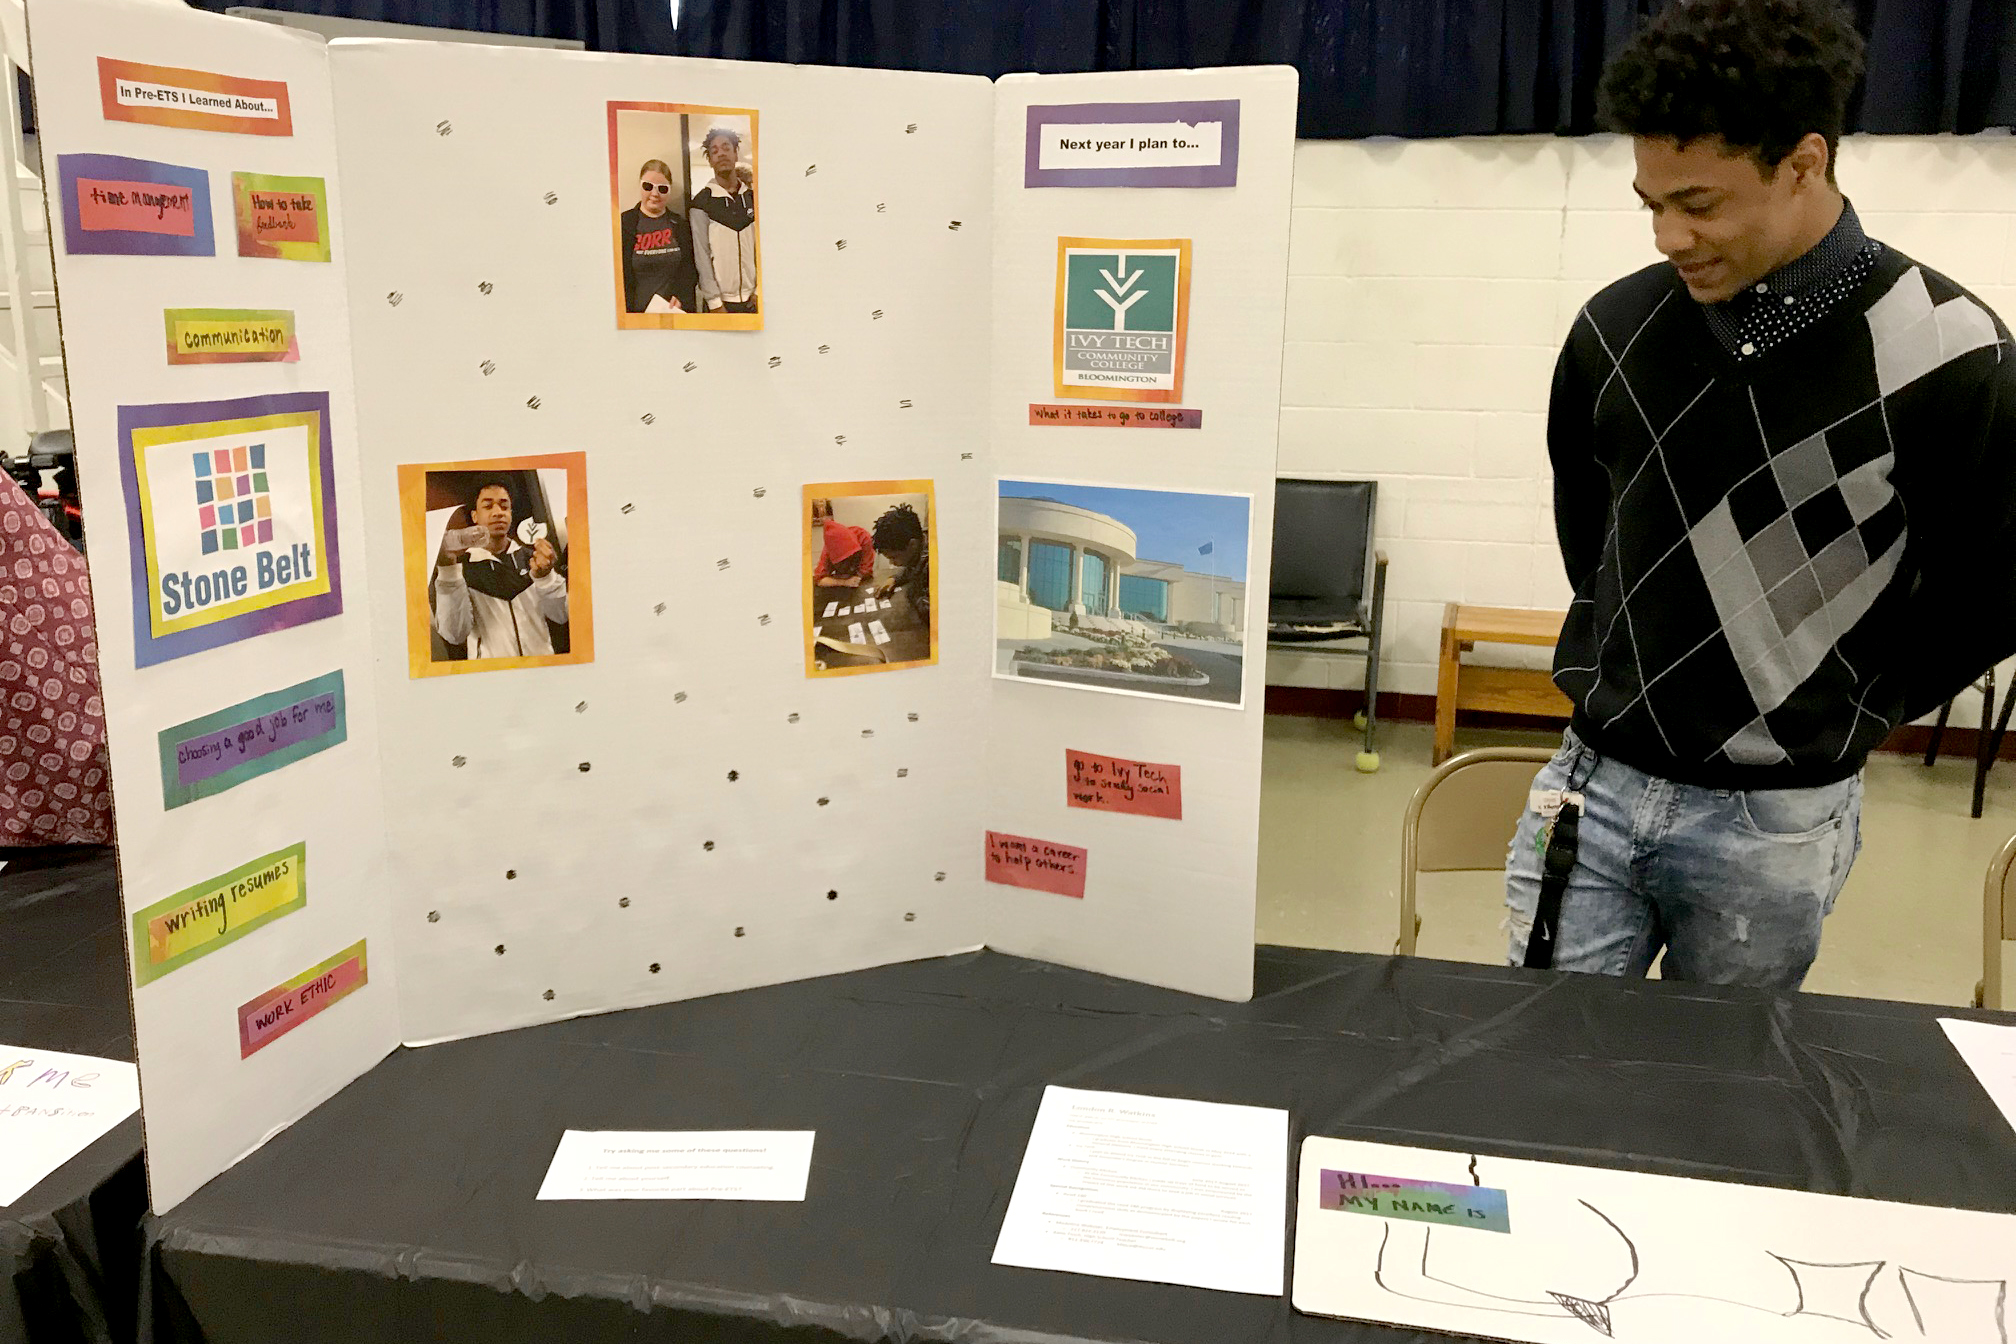 A young man stands behind a table and next to his poster, waiting for visitors to his Pre-ETS booth.